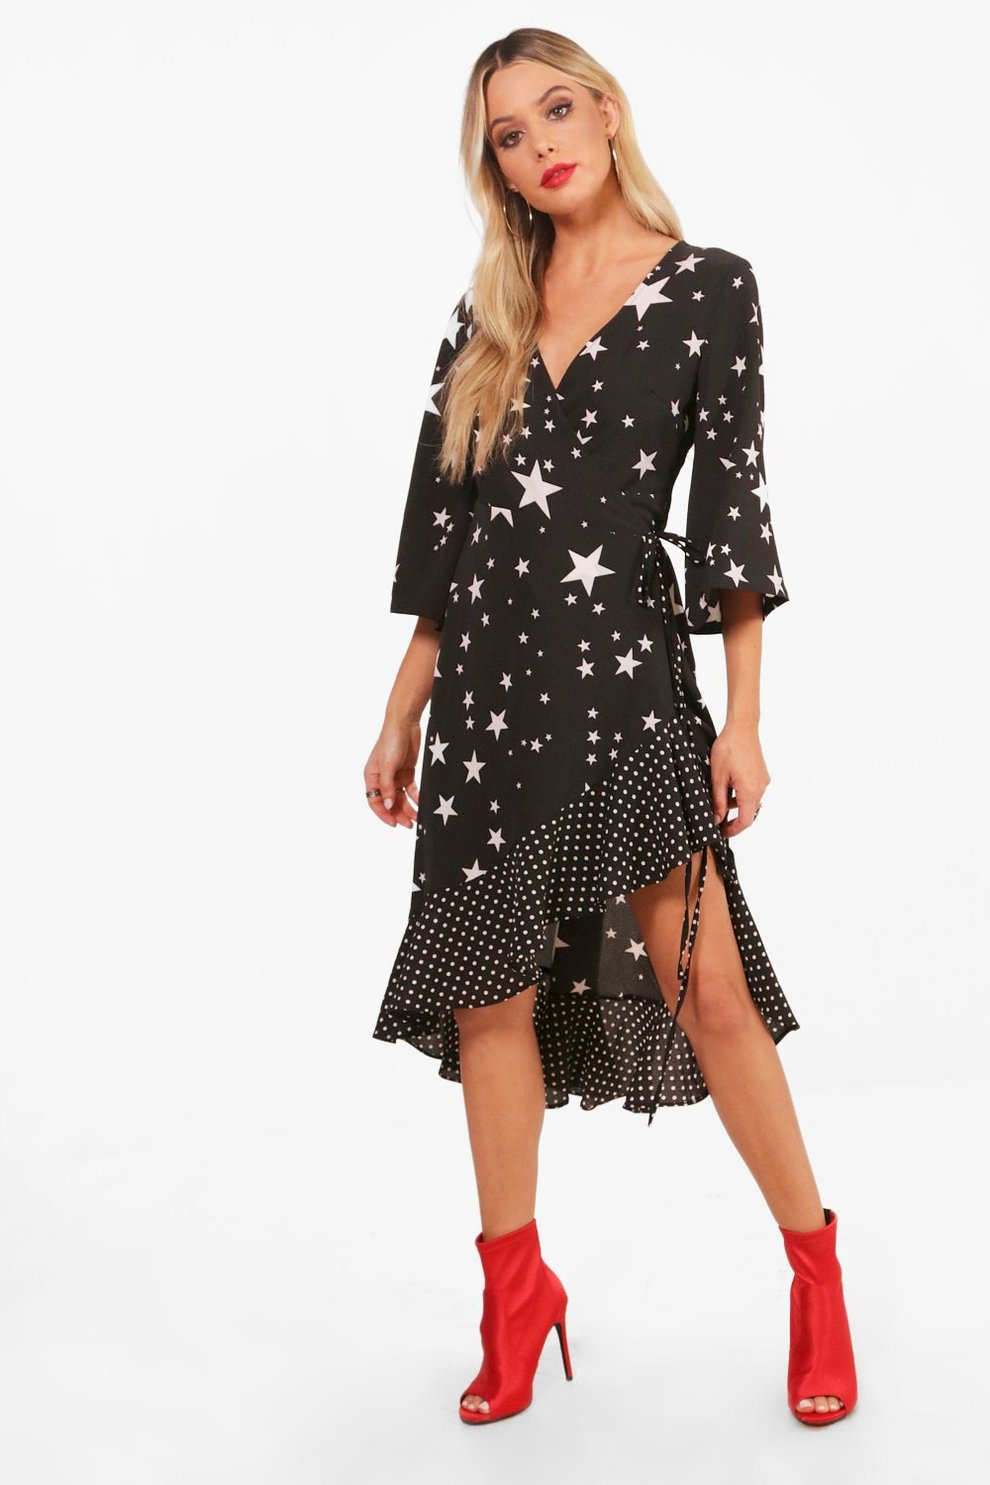 Boohoo Star Print Woven Wrap Front Tea Dress Huge Surprise Sale Online Free Shipping Cheap Online Quality From China Cheap KPODfc1Bmw